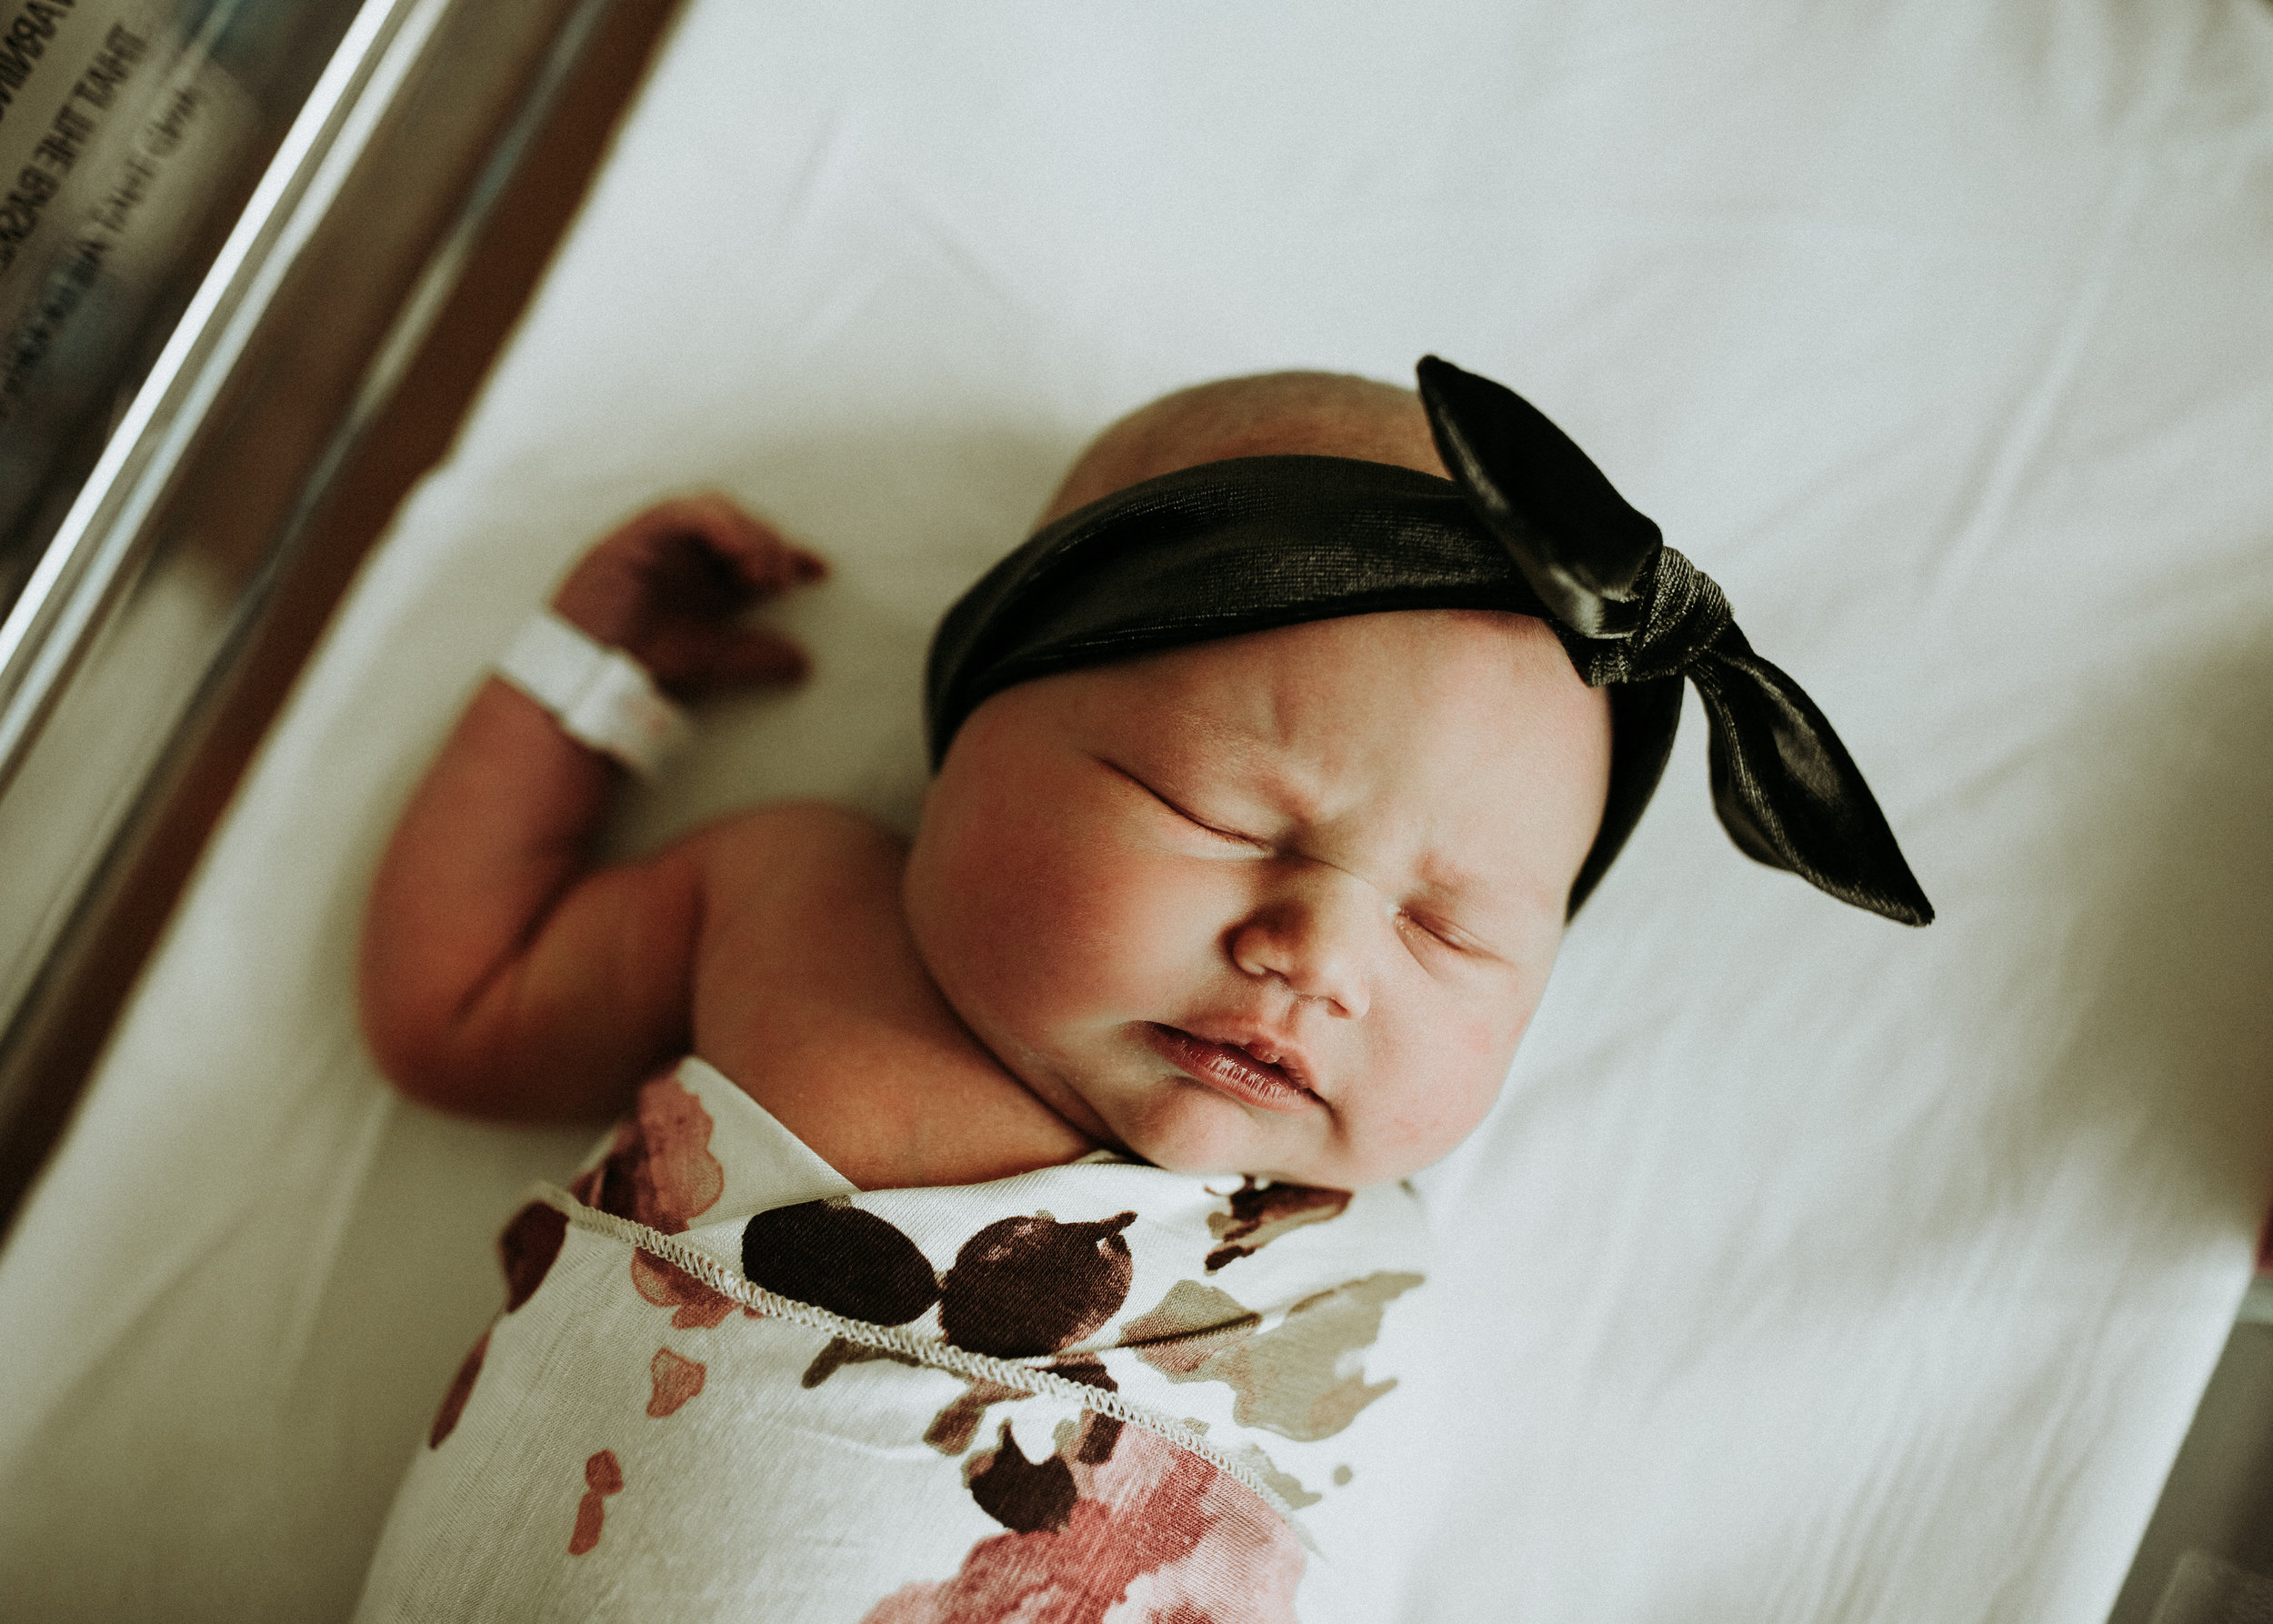 Birth-Photographer-Bellingham-WA-Brianne-Bell-Photograpy-(Maggie)-18.jpg